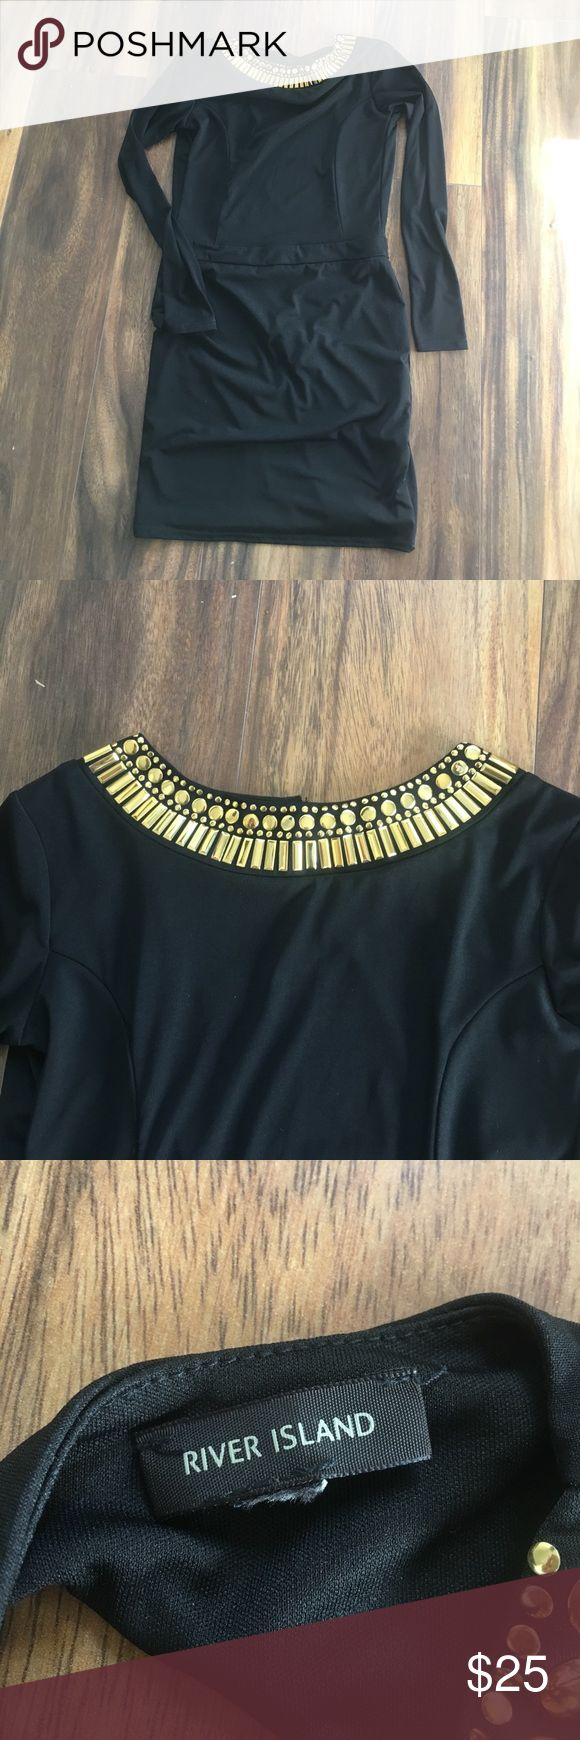 FLASH SALE👏🏽💥Black Dress + Gold Collar RIVER ISLAND BRAND!  Black Dress + Gold Embellished Collar Size cut off, but it's a MEDIUM PERFECT CONDITION - worn once for NYE Open Back Long sleeves River Island Dresses Long Sleeve